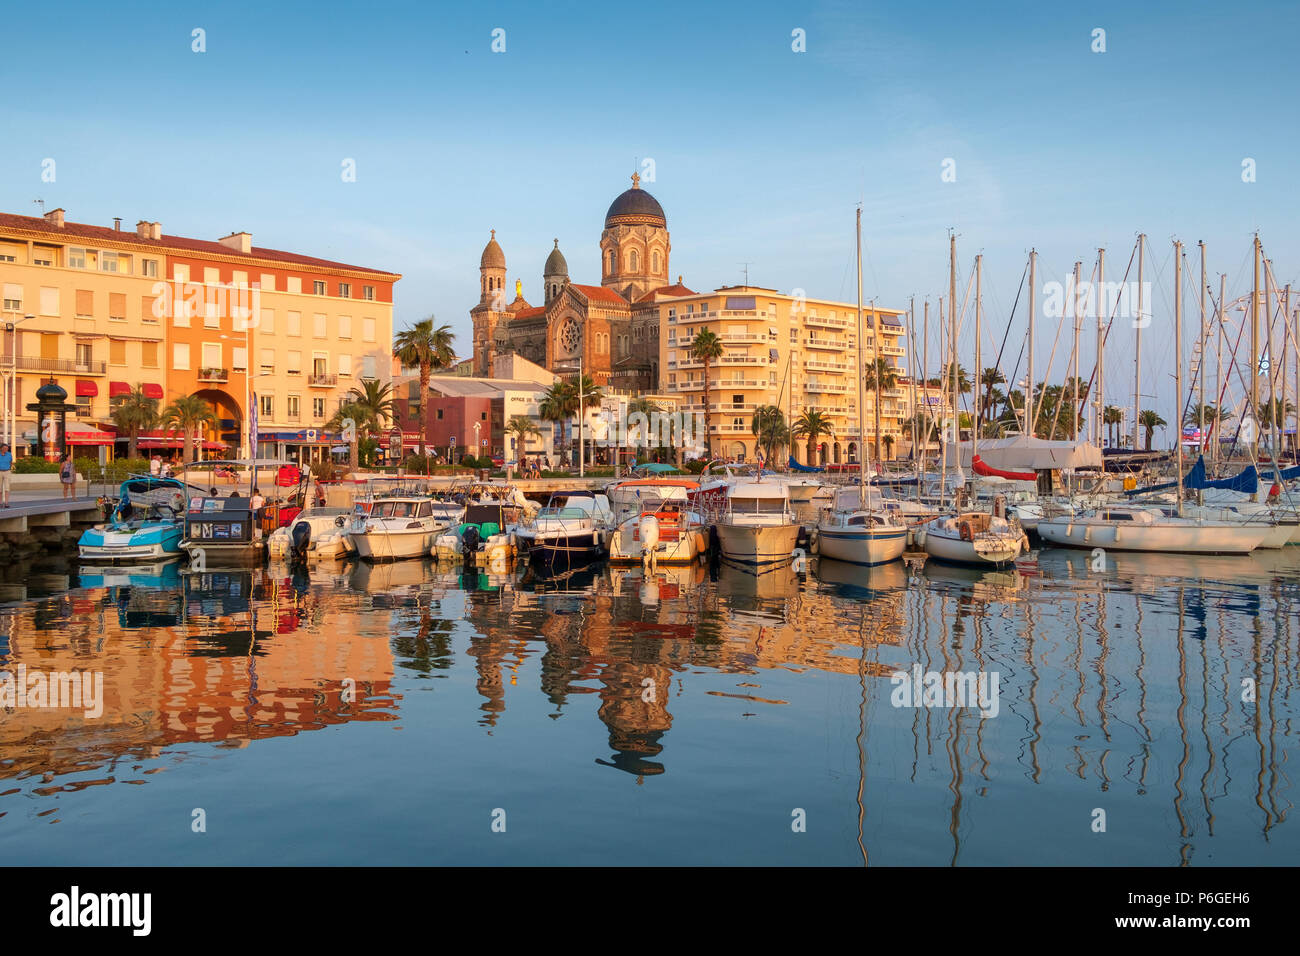 The evening sun shines on the cathedral, seafront buidings and boats, Saint Raphael, France. - Stock Image